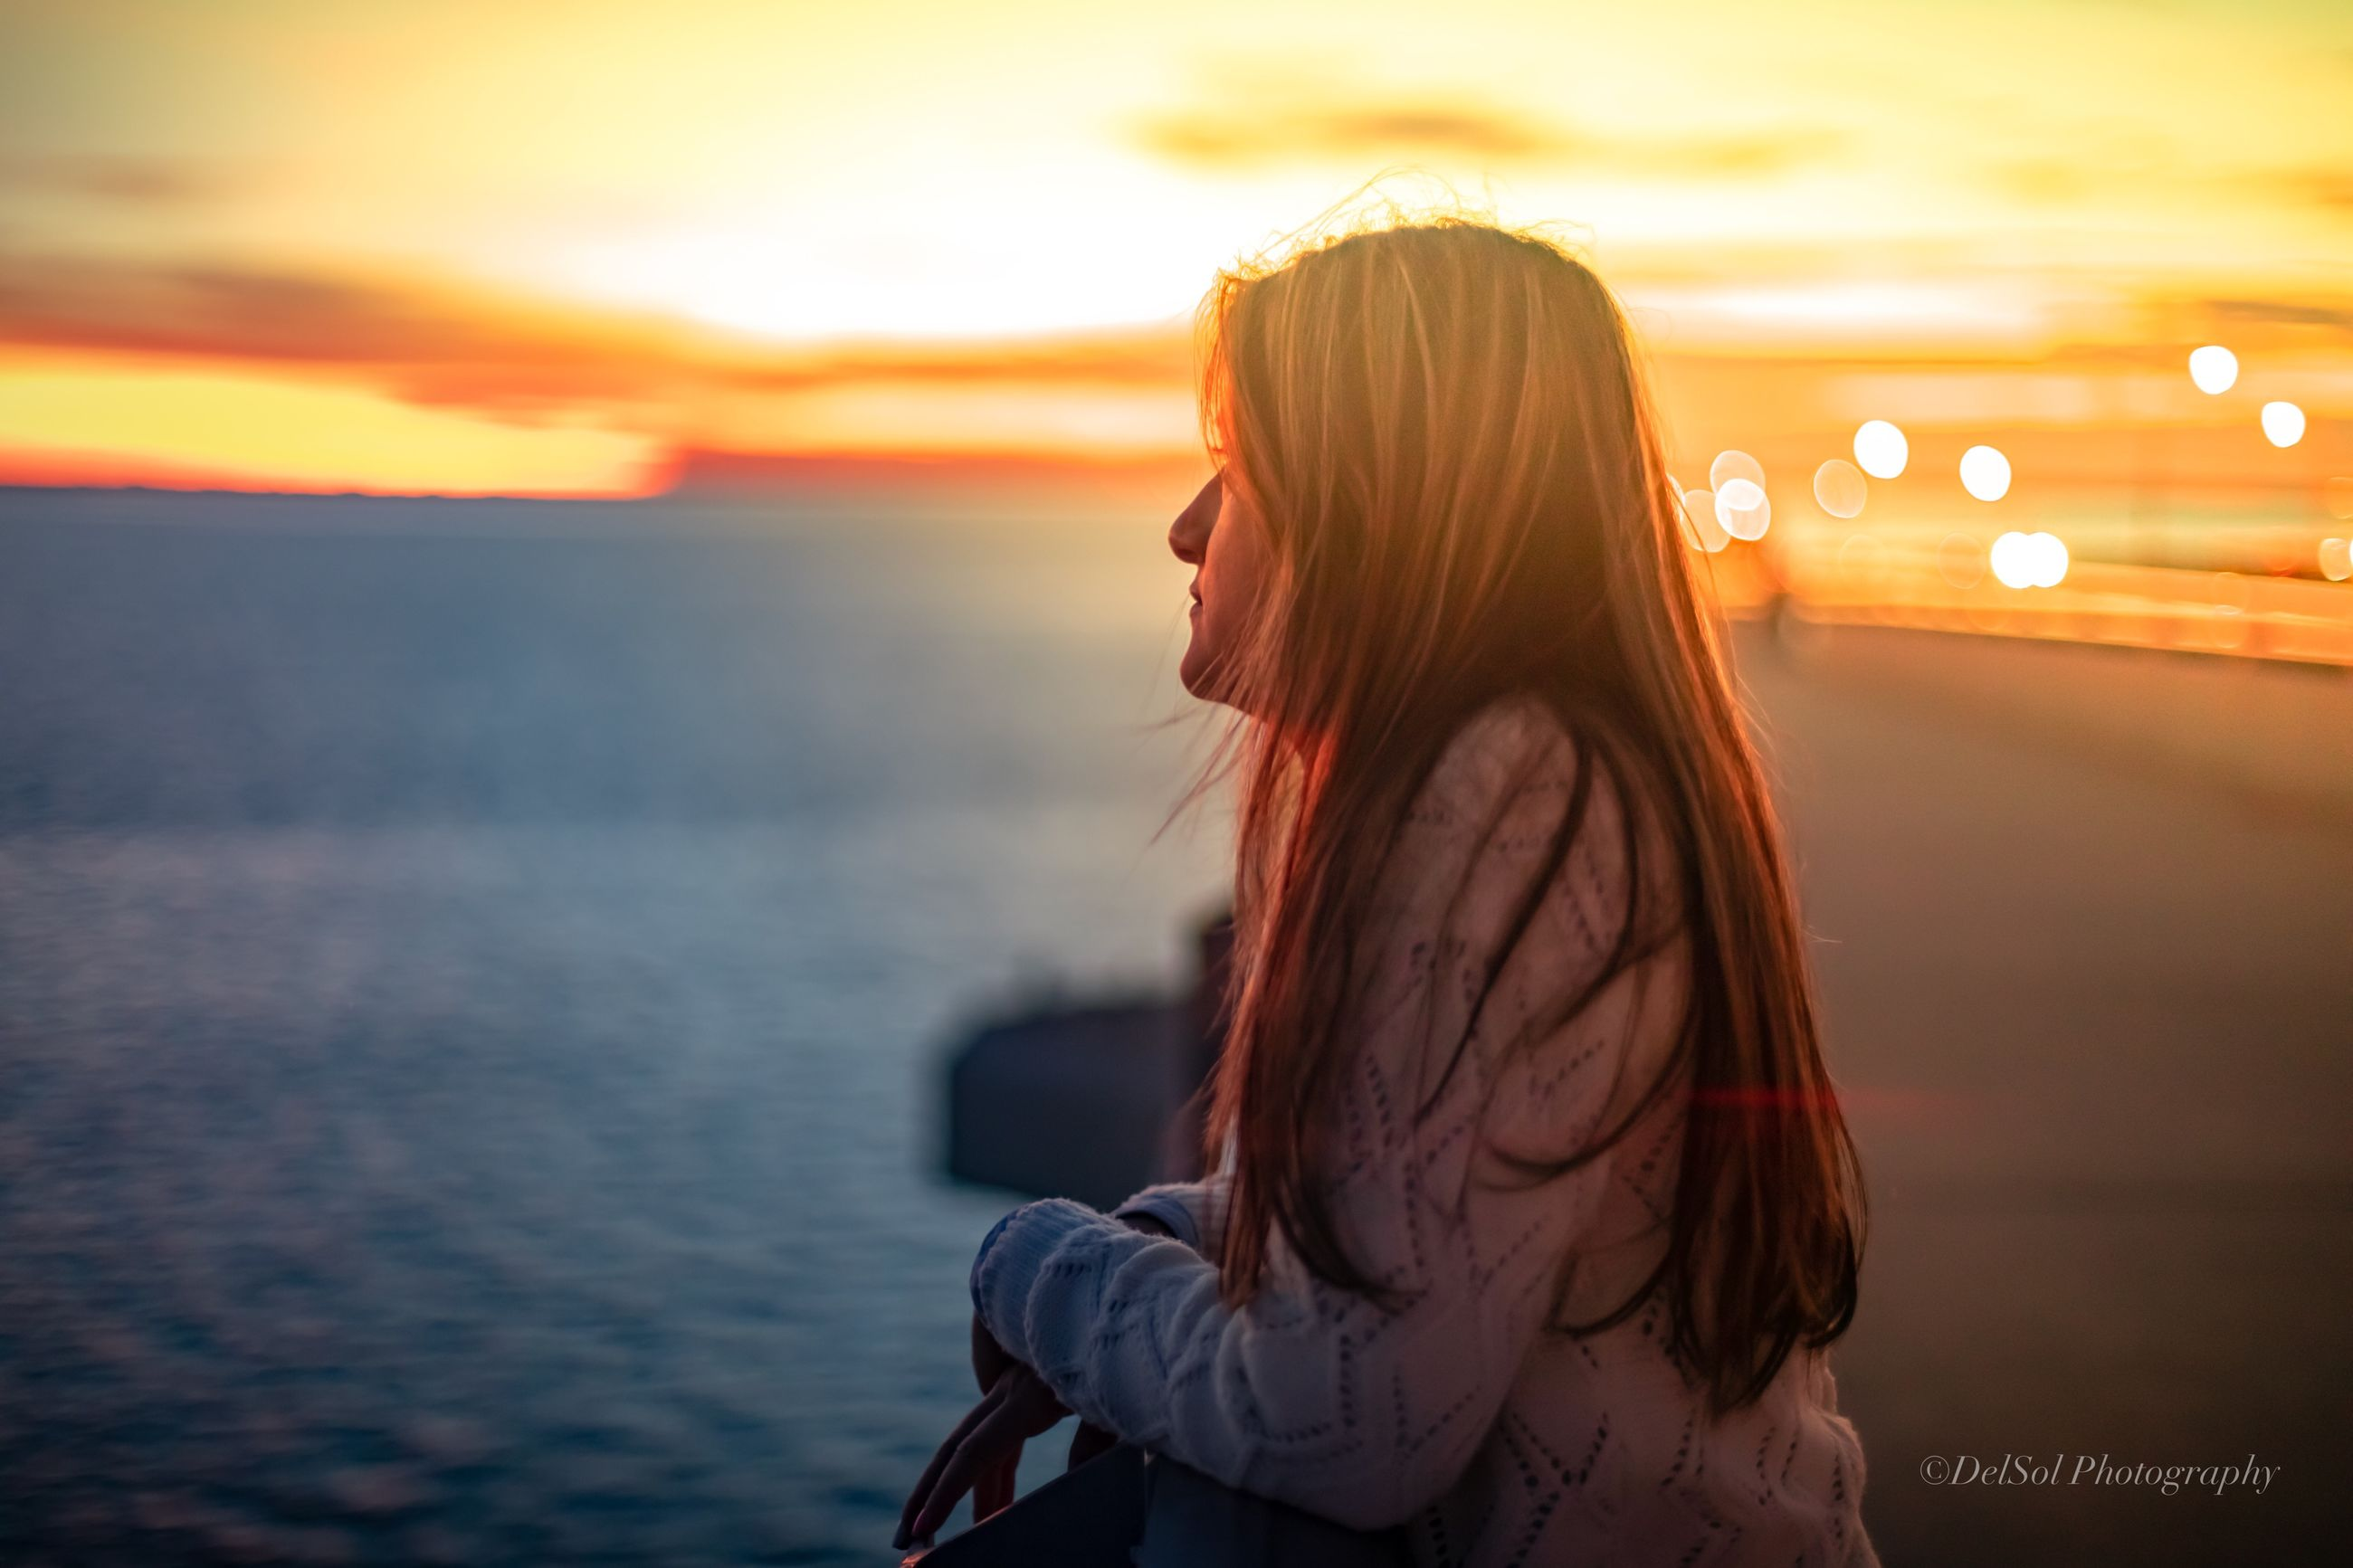 sunset, real people, sky, one person, water, lifestyles, women, orange color, leisure activity, side view, focus on foreground, beauty in nature, sea, long hair, adult, hairstyle, young women, young adult, hair, outdoors